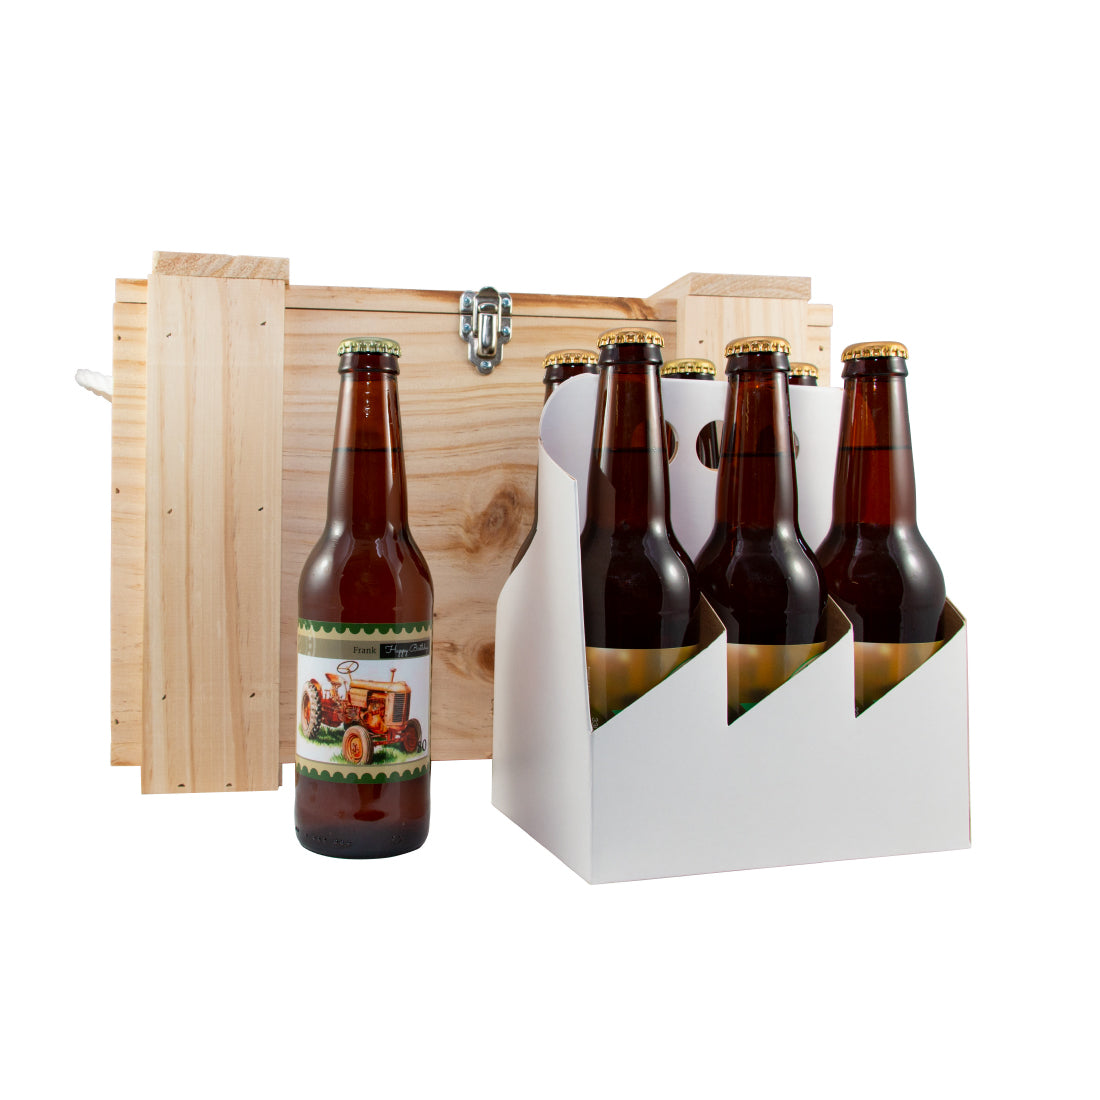 Craft Lager 4.3% - Wooden Beer Box - Case of 24